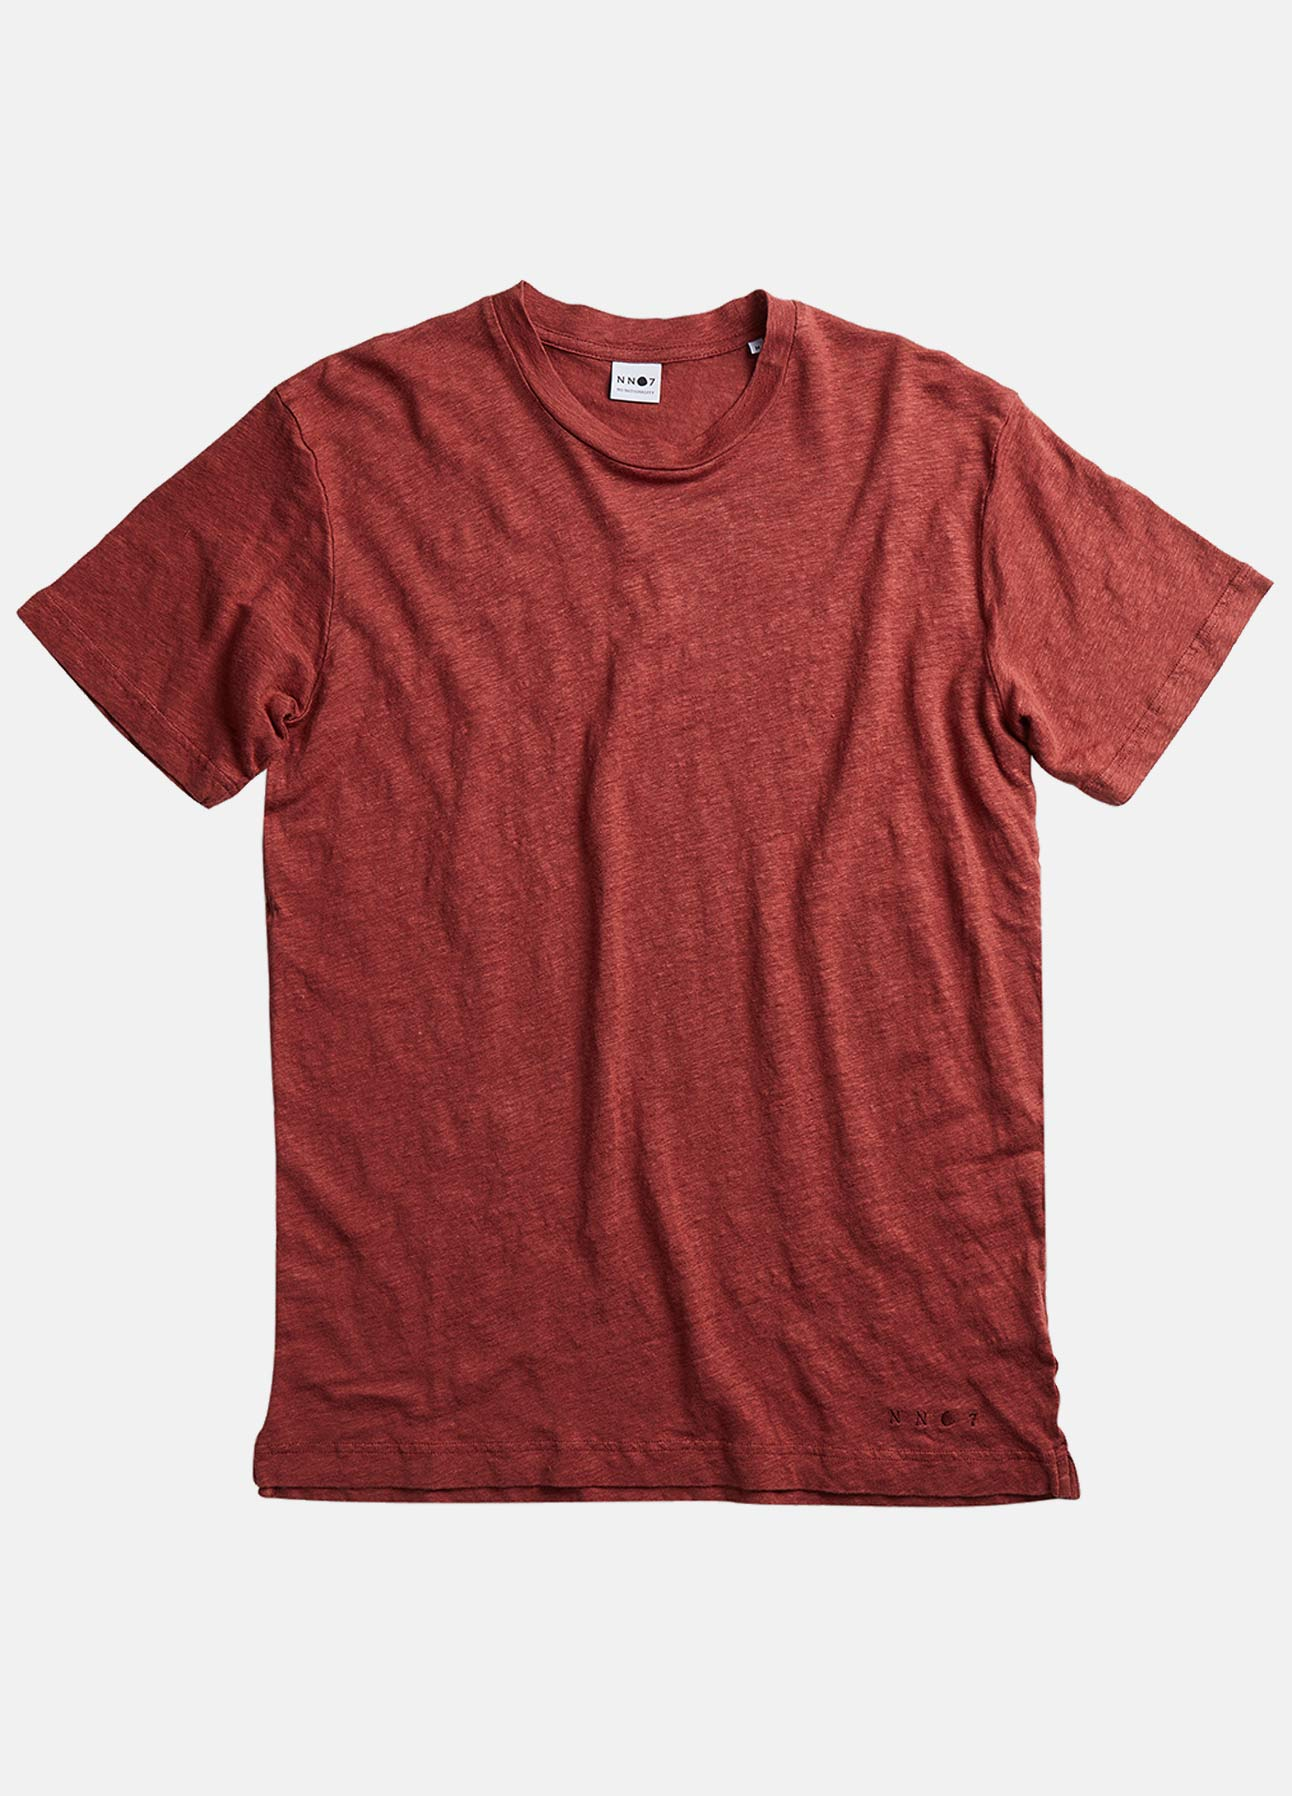 NN07 t-shirt dylan burned red ss21